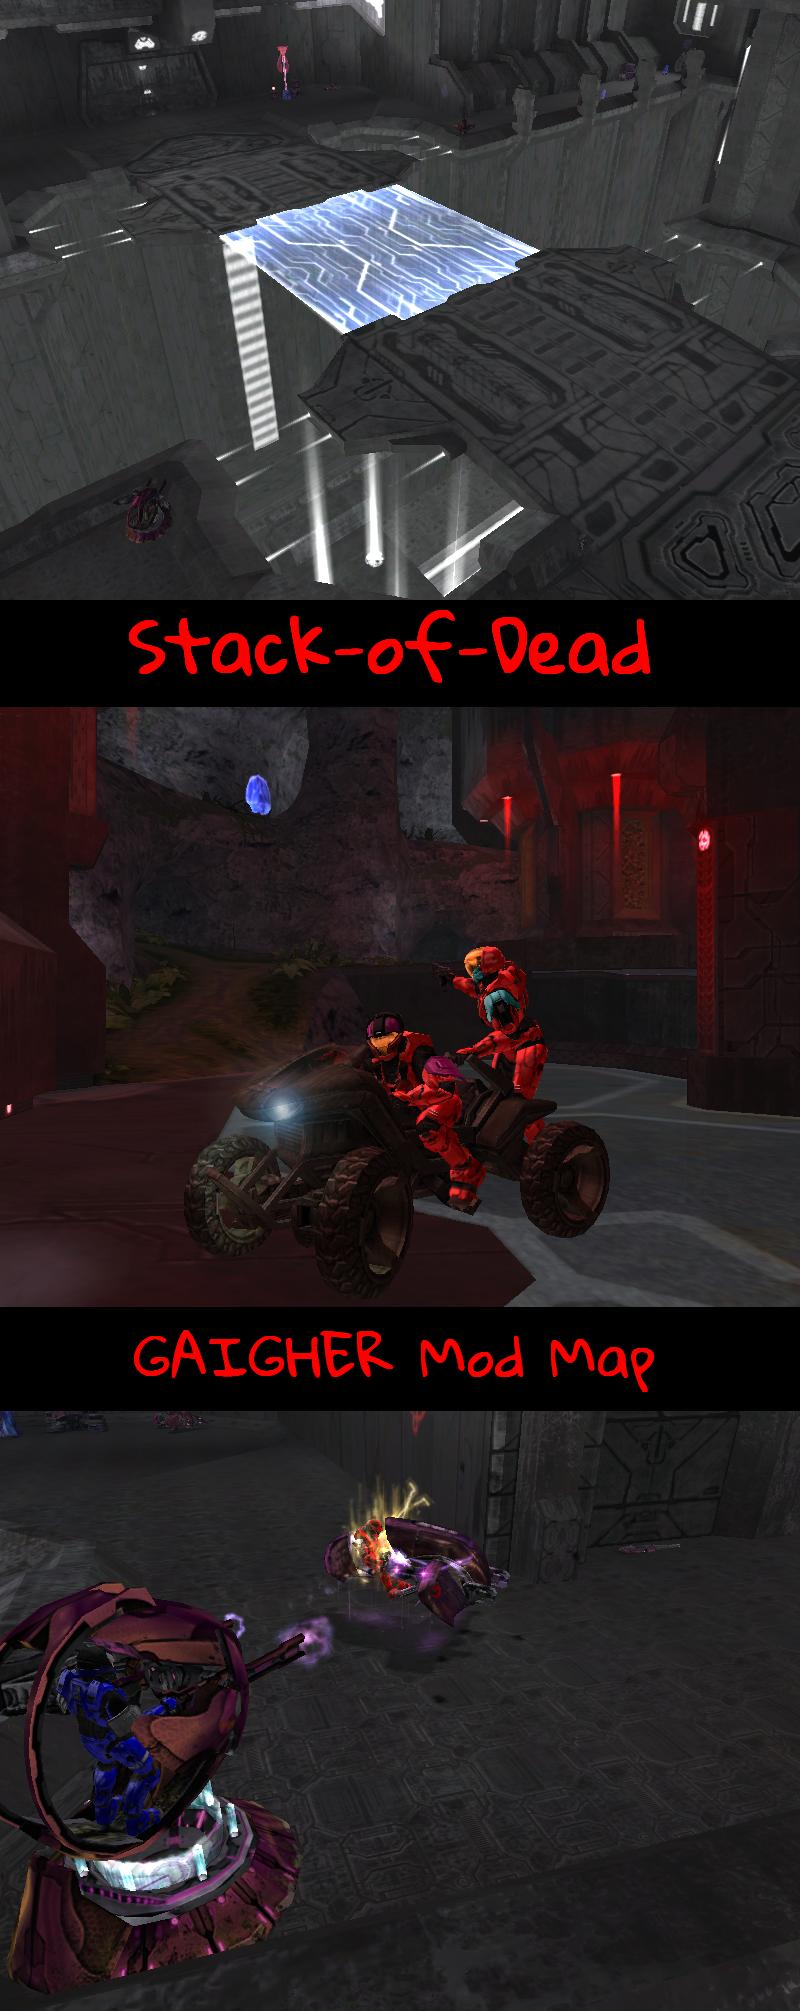 Stack-of-Dead Stack Dead maphaloce map halo ce<br />maphalo halomap carte cartes cr&eacute;ation GAIGHER mod